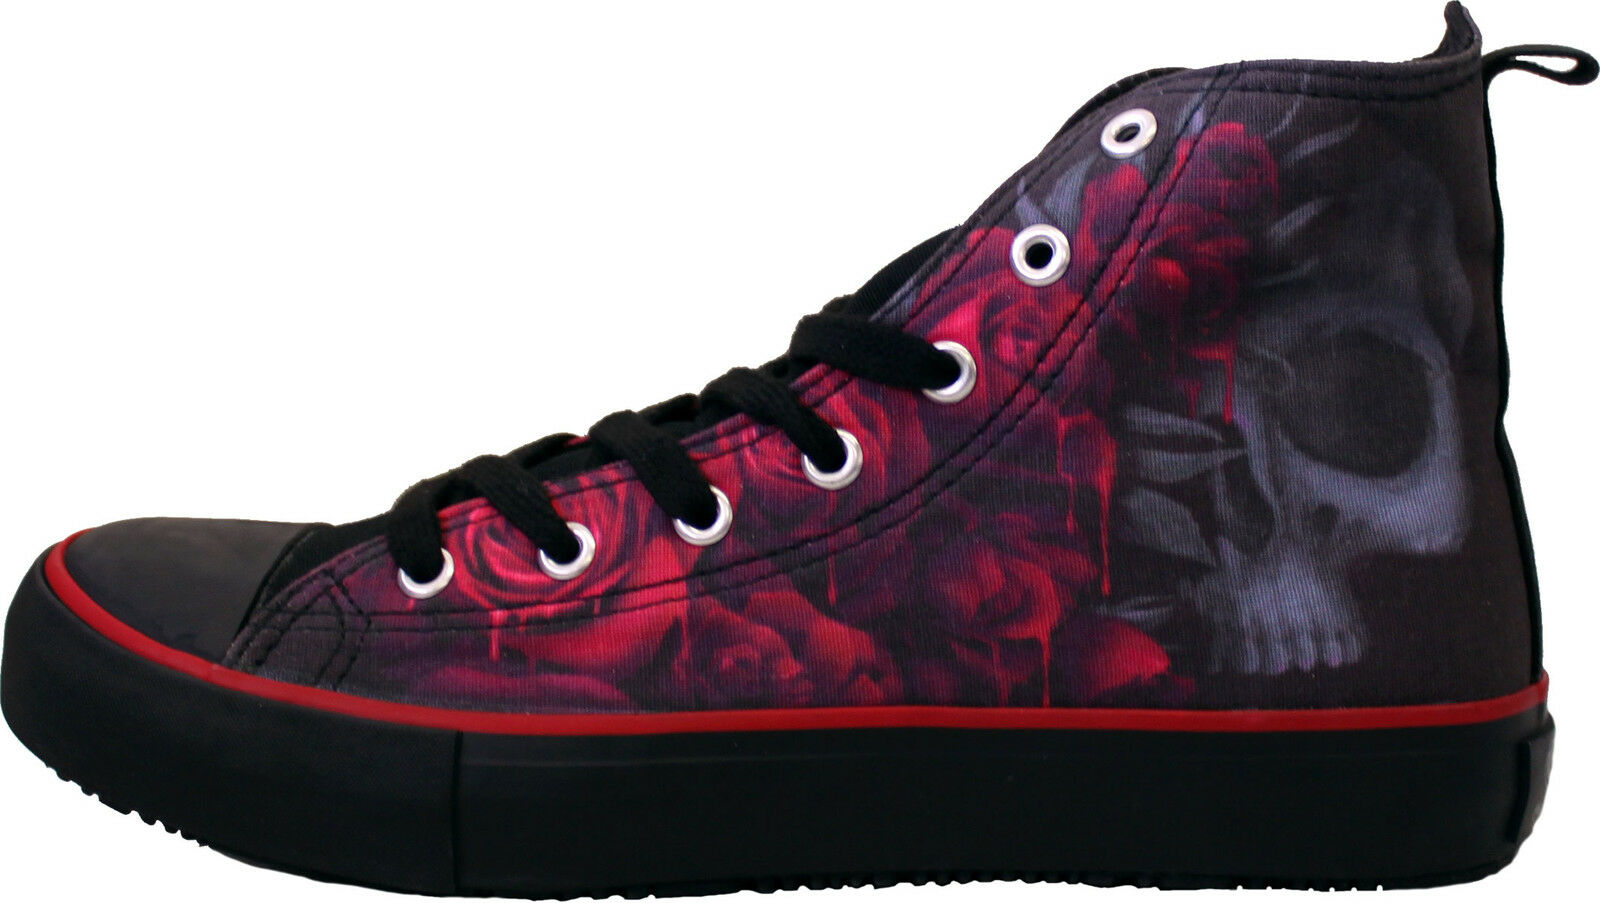 SPIRAL DIRECT Sneakers Ladies High Top Lace up Canvas Shoes/Blood Rose/Skull